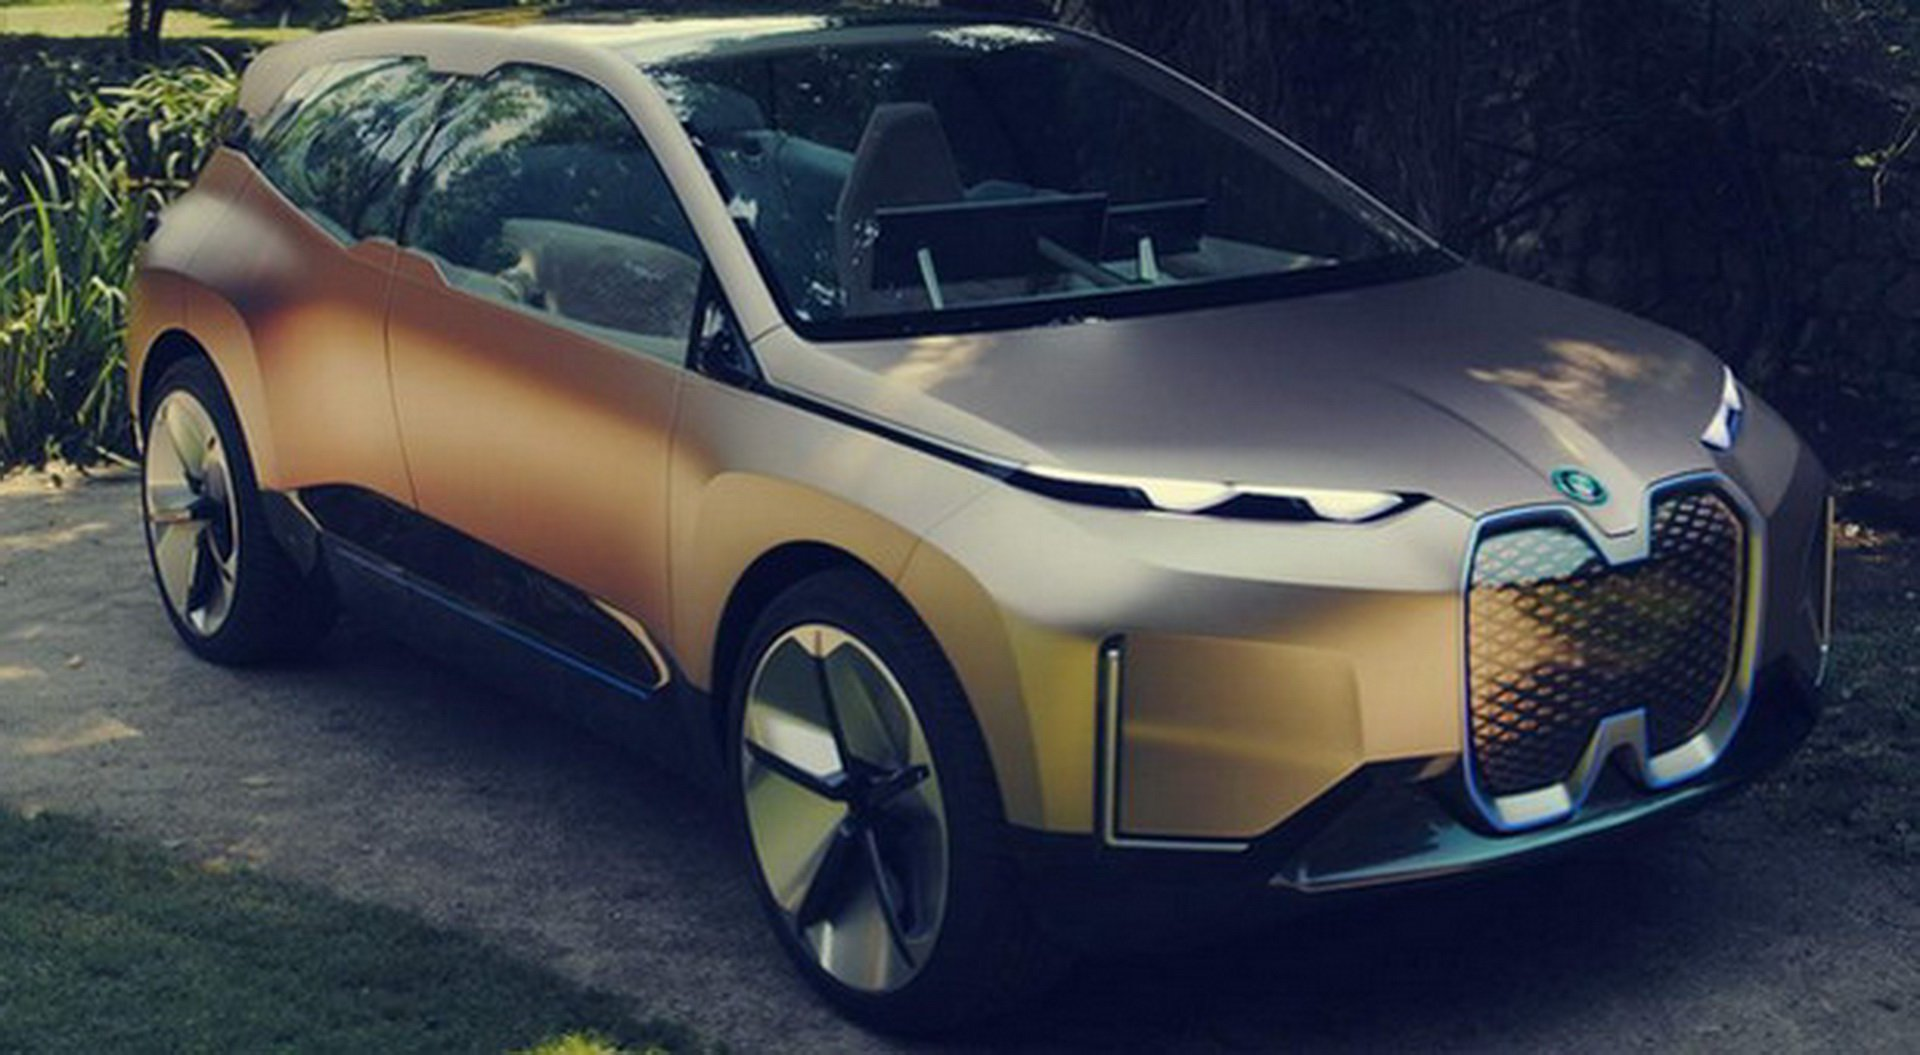 Bmw Unveils New Electric Suv Inext Project Daily News Egypt